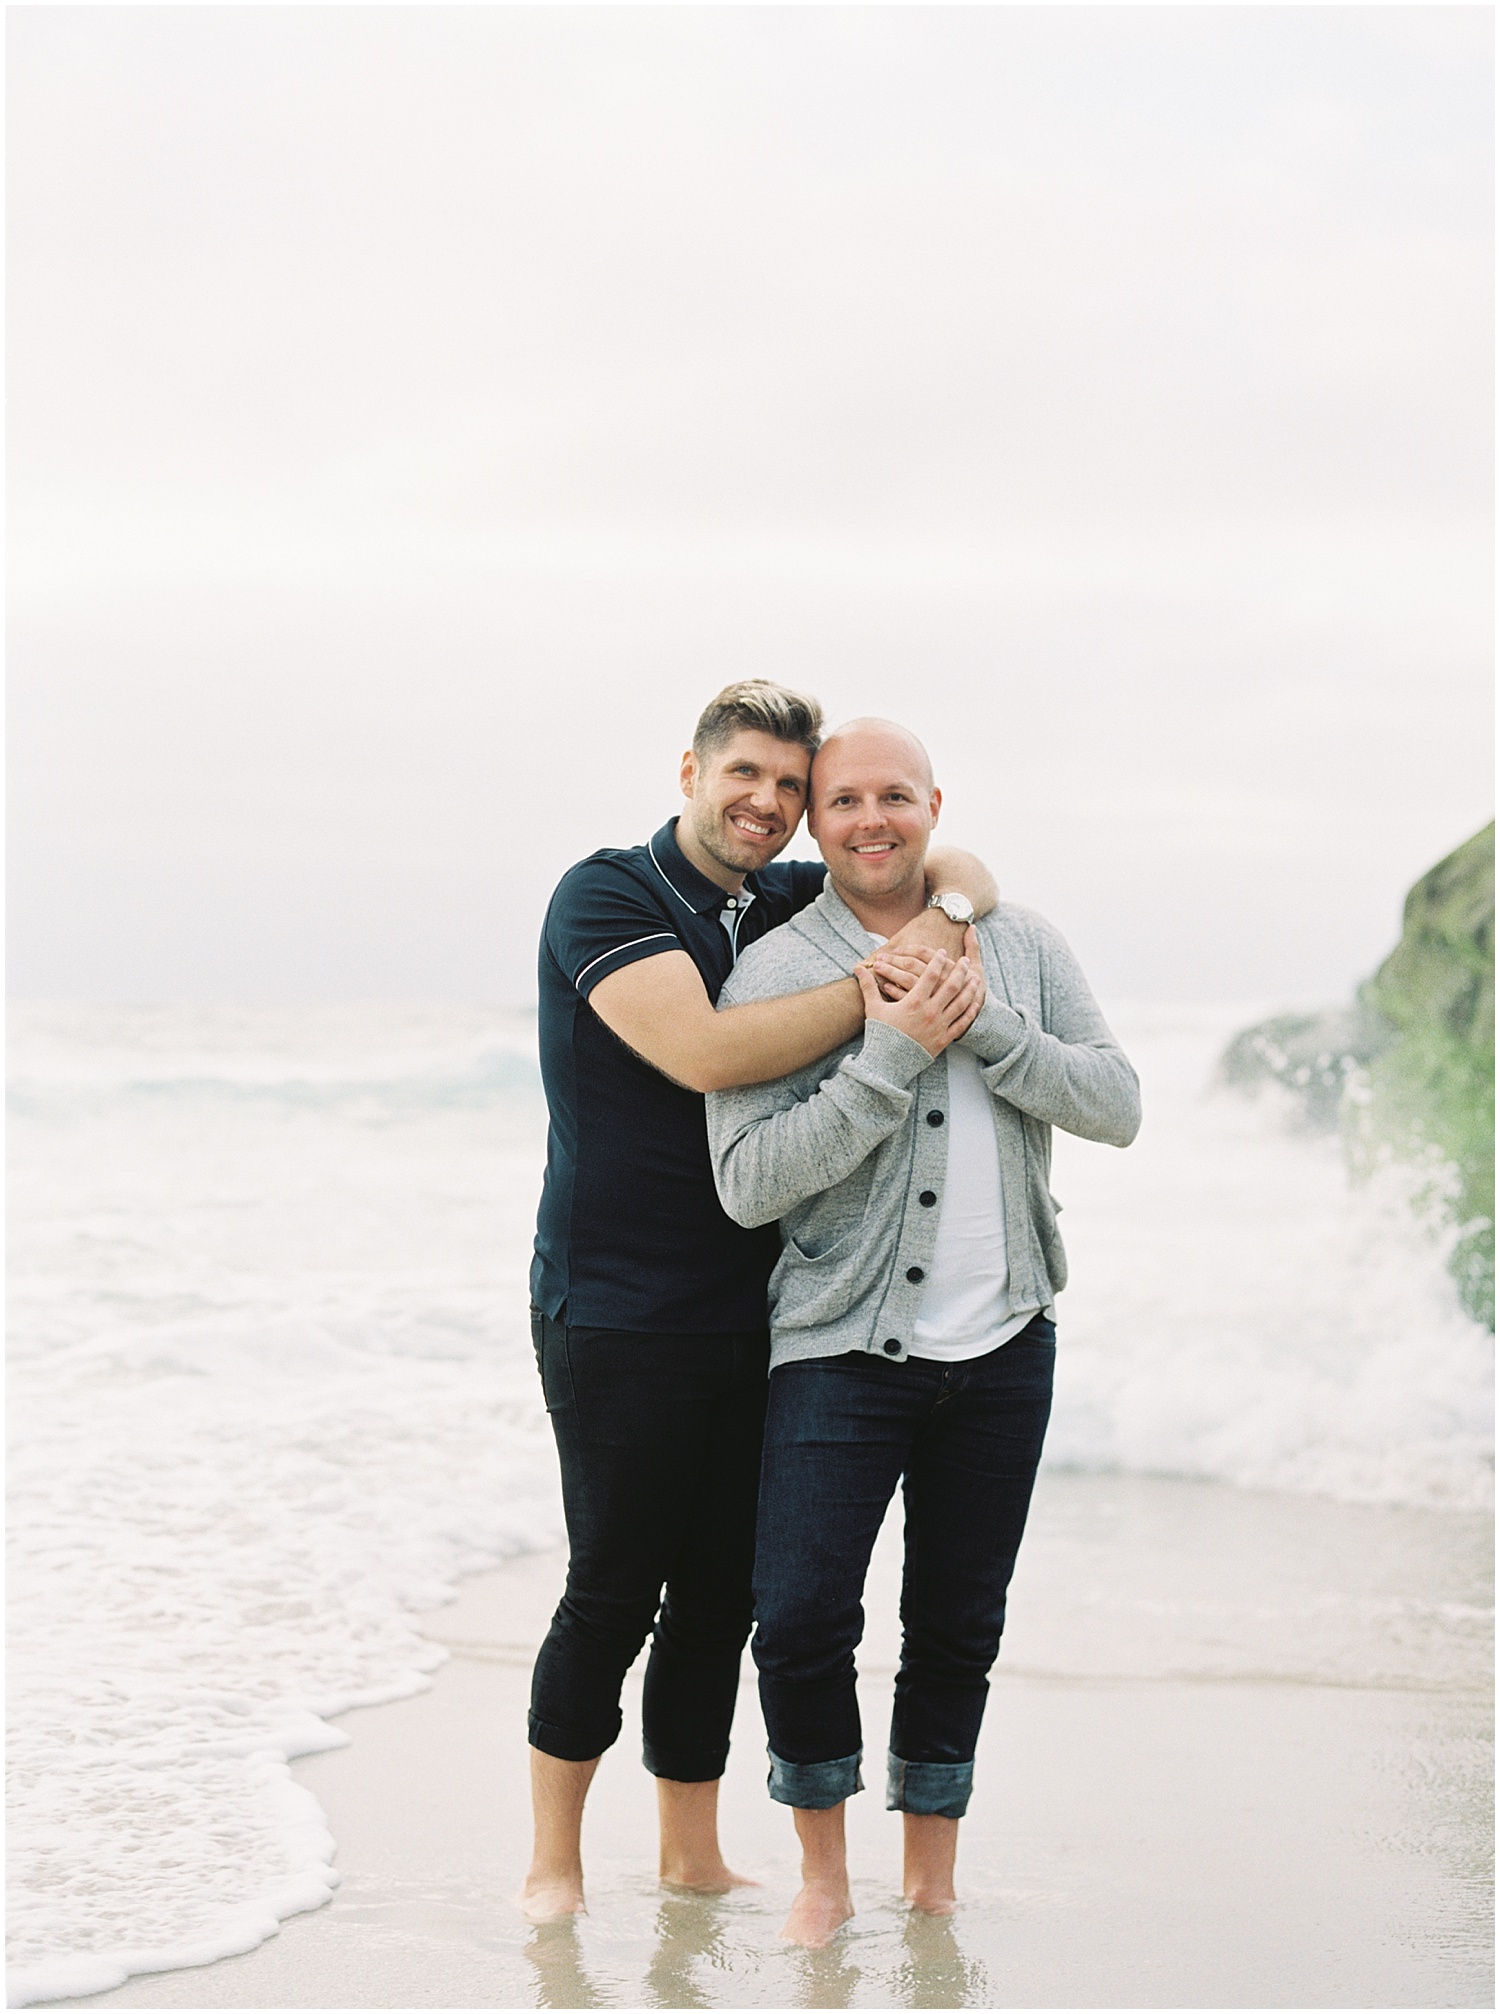 San_Francisco_Same_Sex_Wedding_photographer-19.jpg